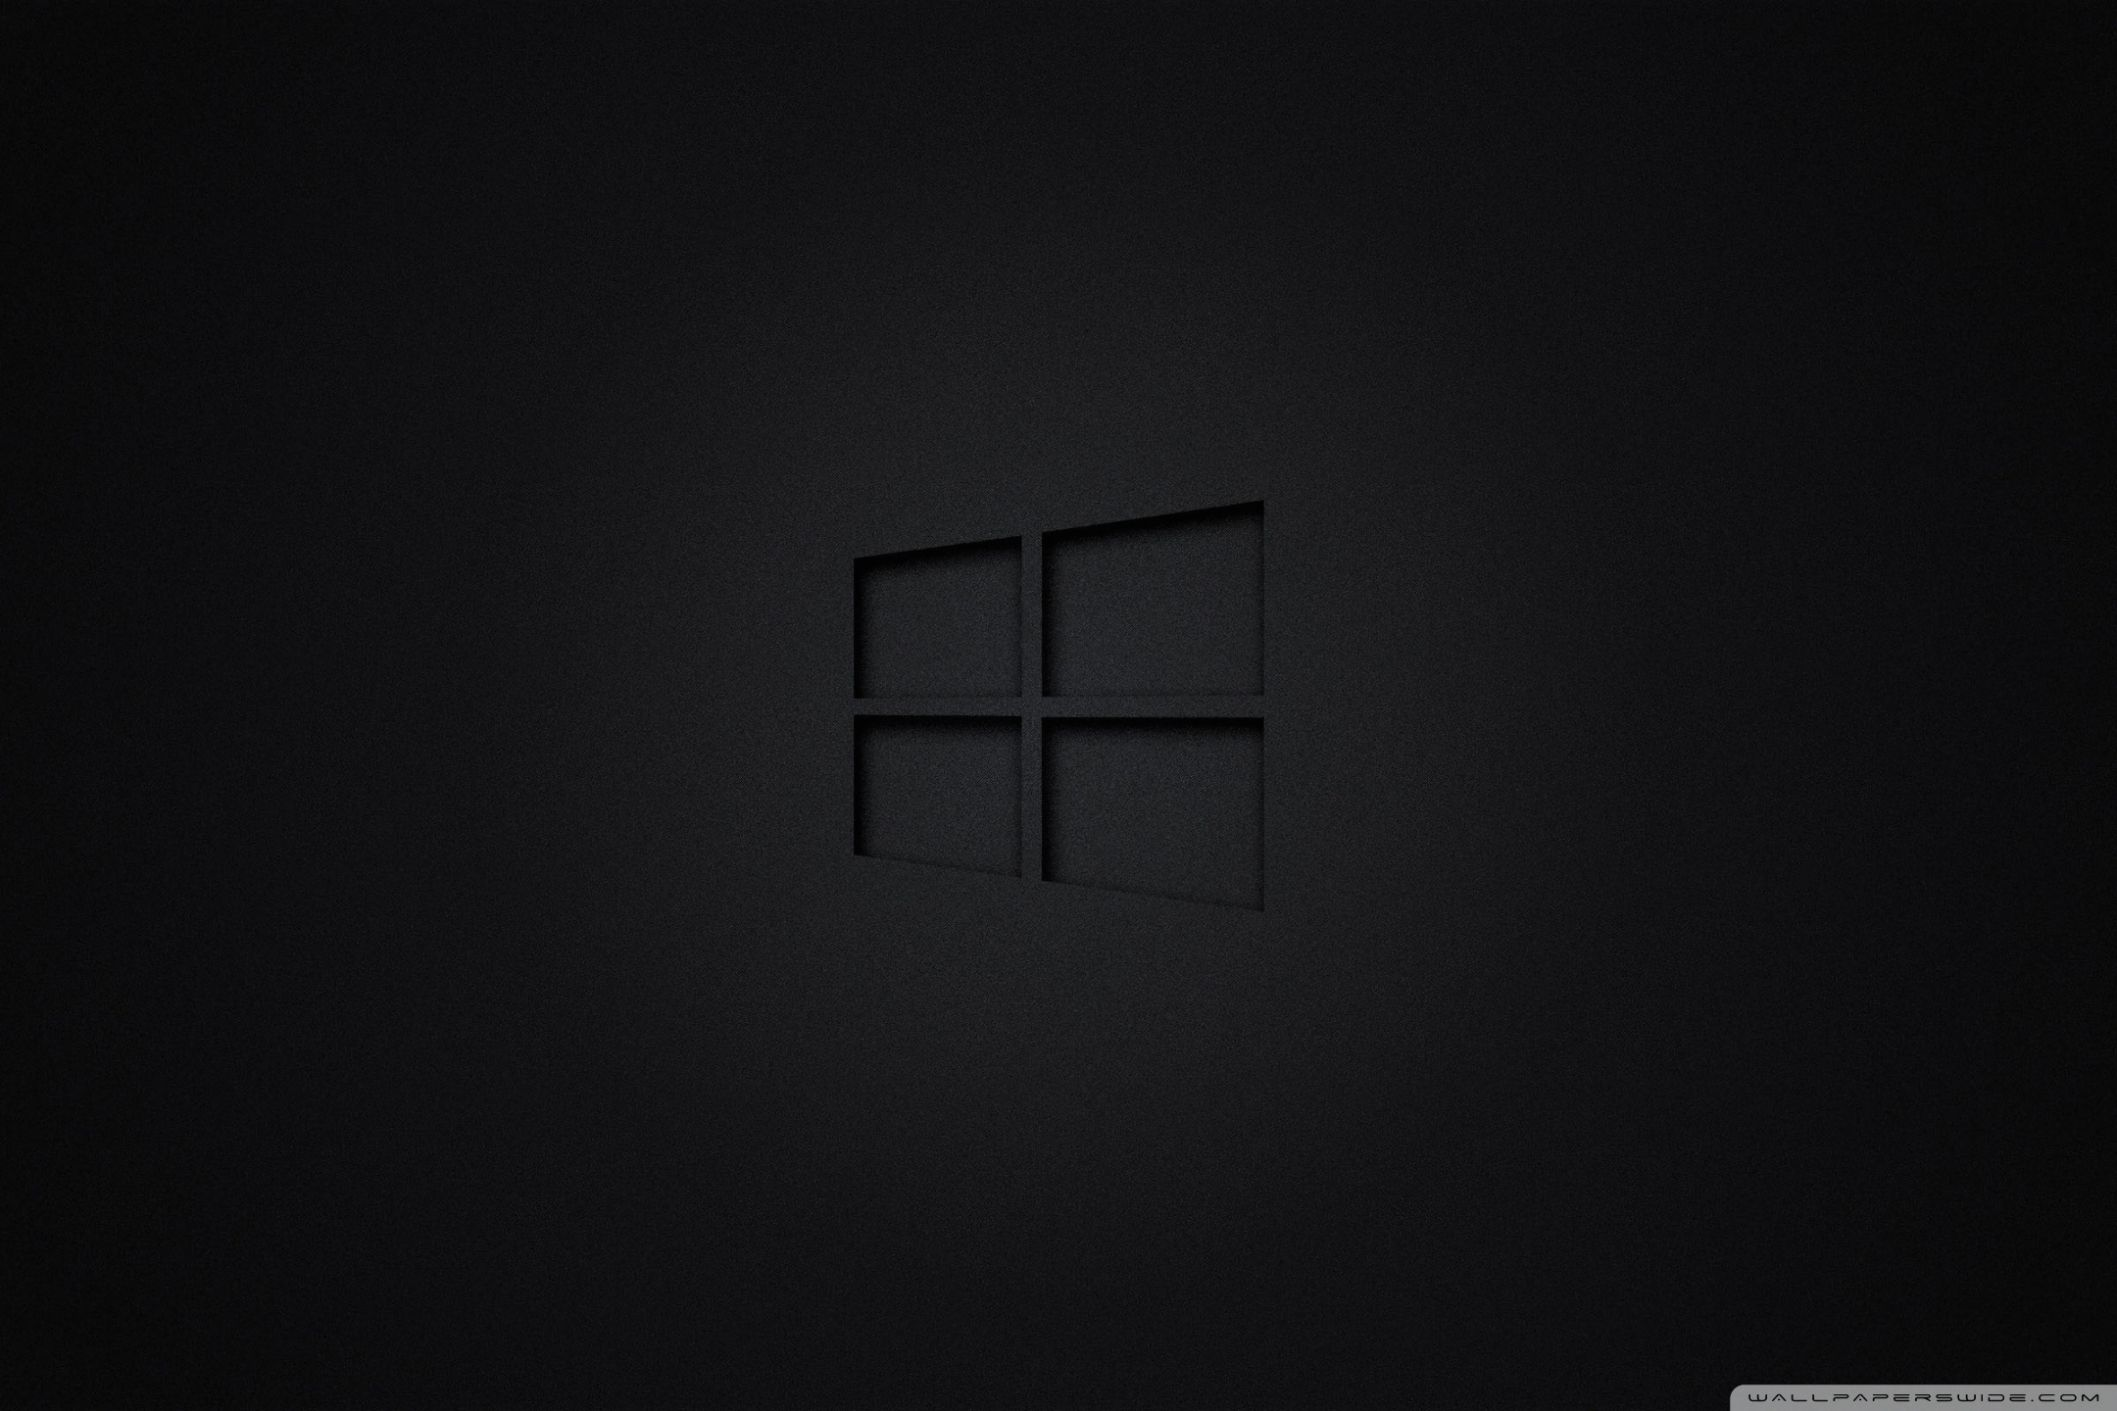 Wall Windows 10 Black 4k Hd Desktop Wallpaper For 4k Ultra Hd